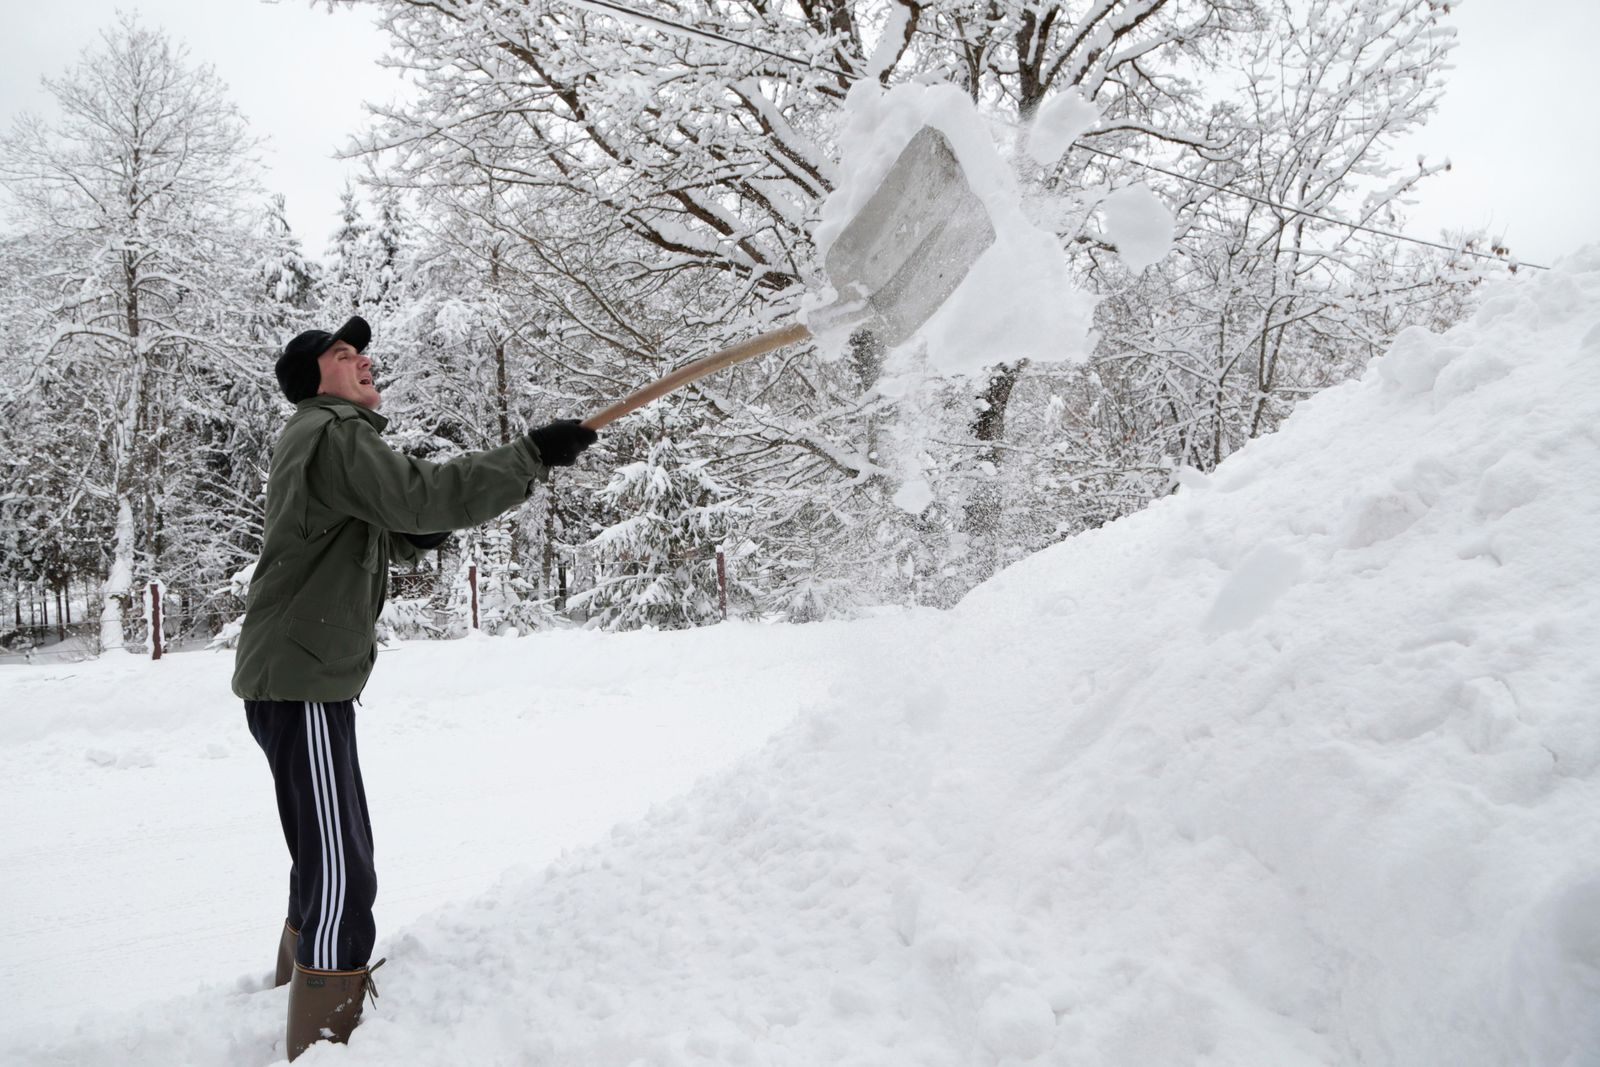 A man shovels snow in front of his house in a remote village near Kladanj, 80 kms north of Sarajevo, Bosnia, Friday, Jan. 11. (AP Photo/Amel Emric)